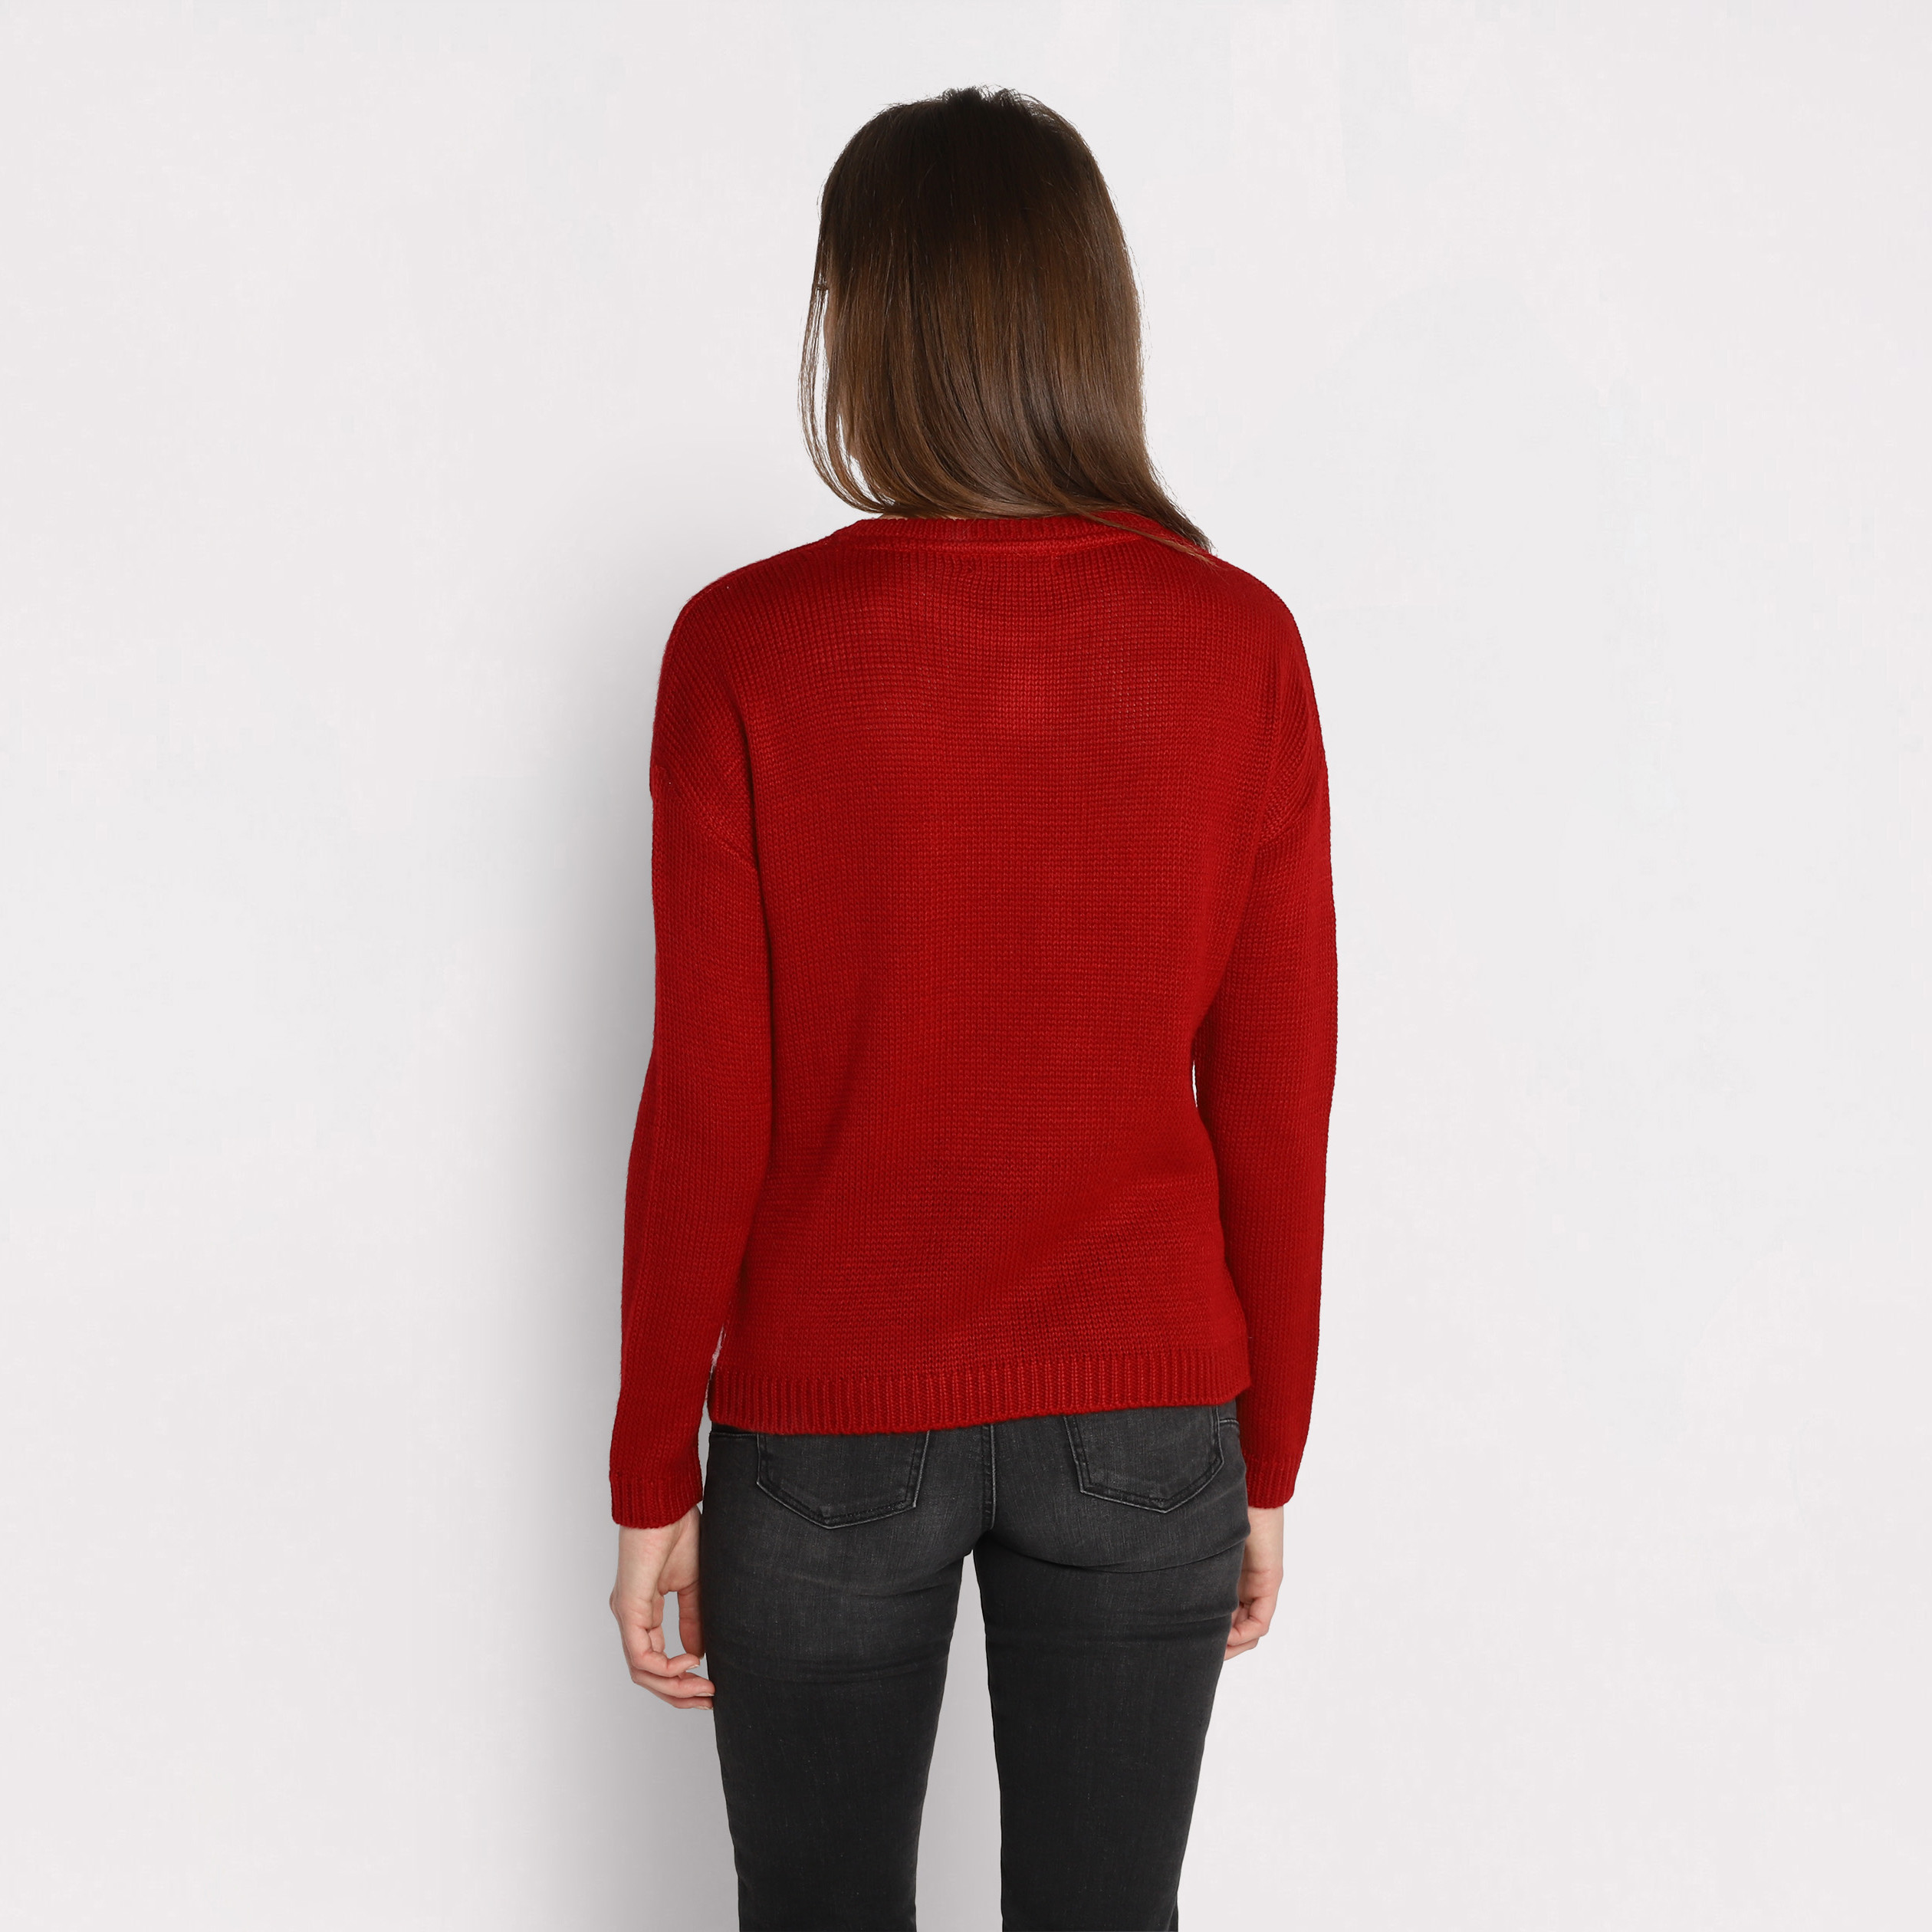 cache cache ou breal pull rouge femme